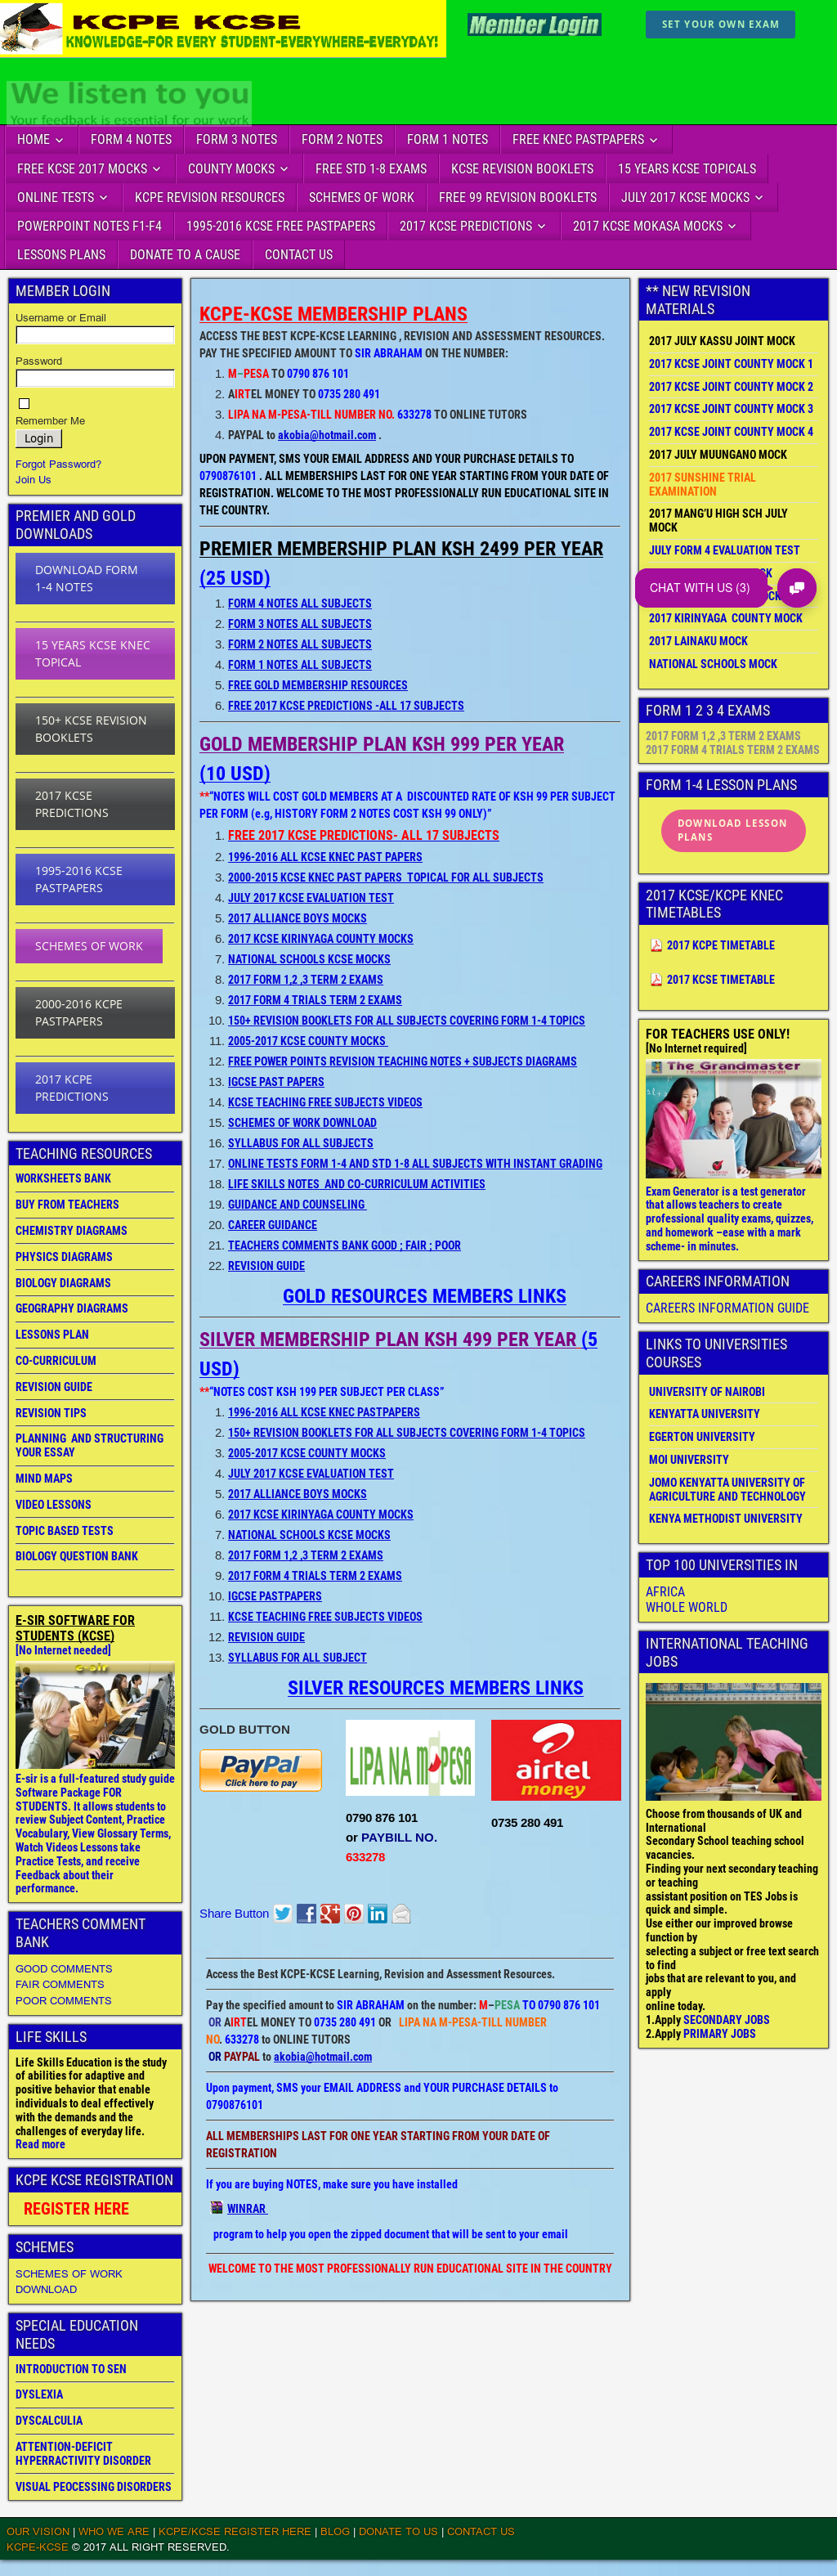 Kcpe-kcse Competitors, Revenue and Employees - Owler Company Profile